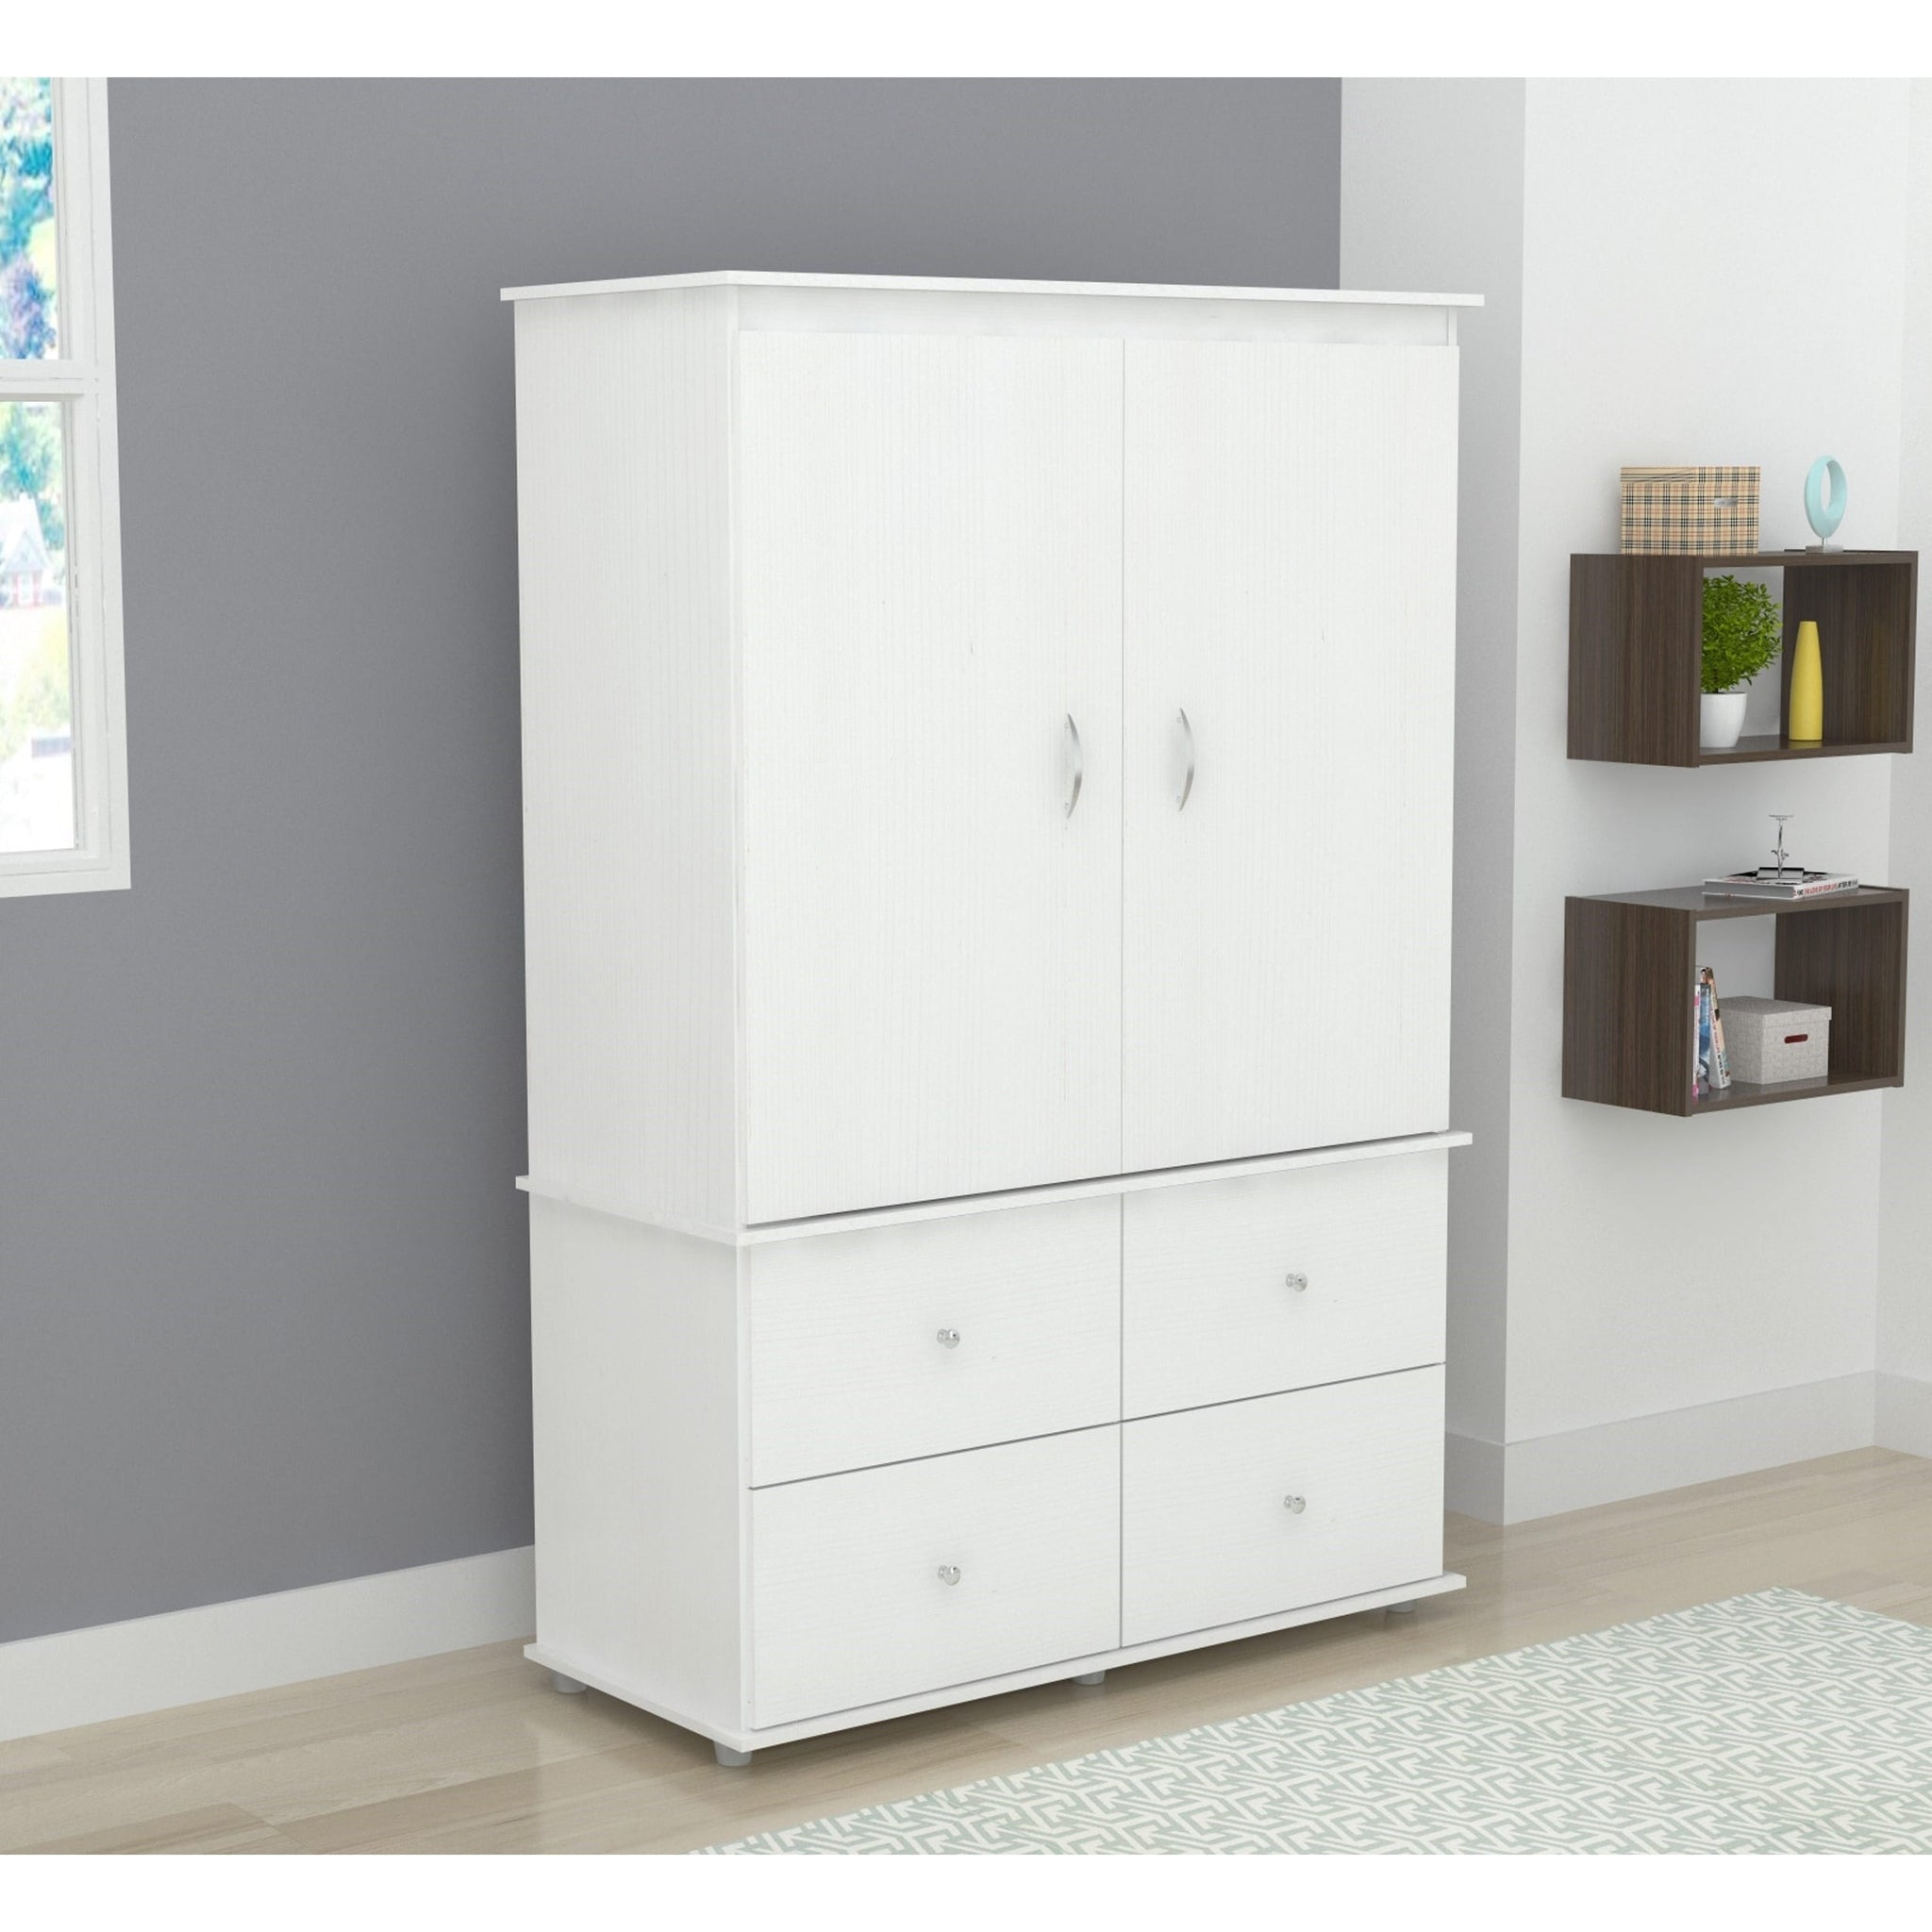 White Audio Video Armoire Cabinet